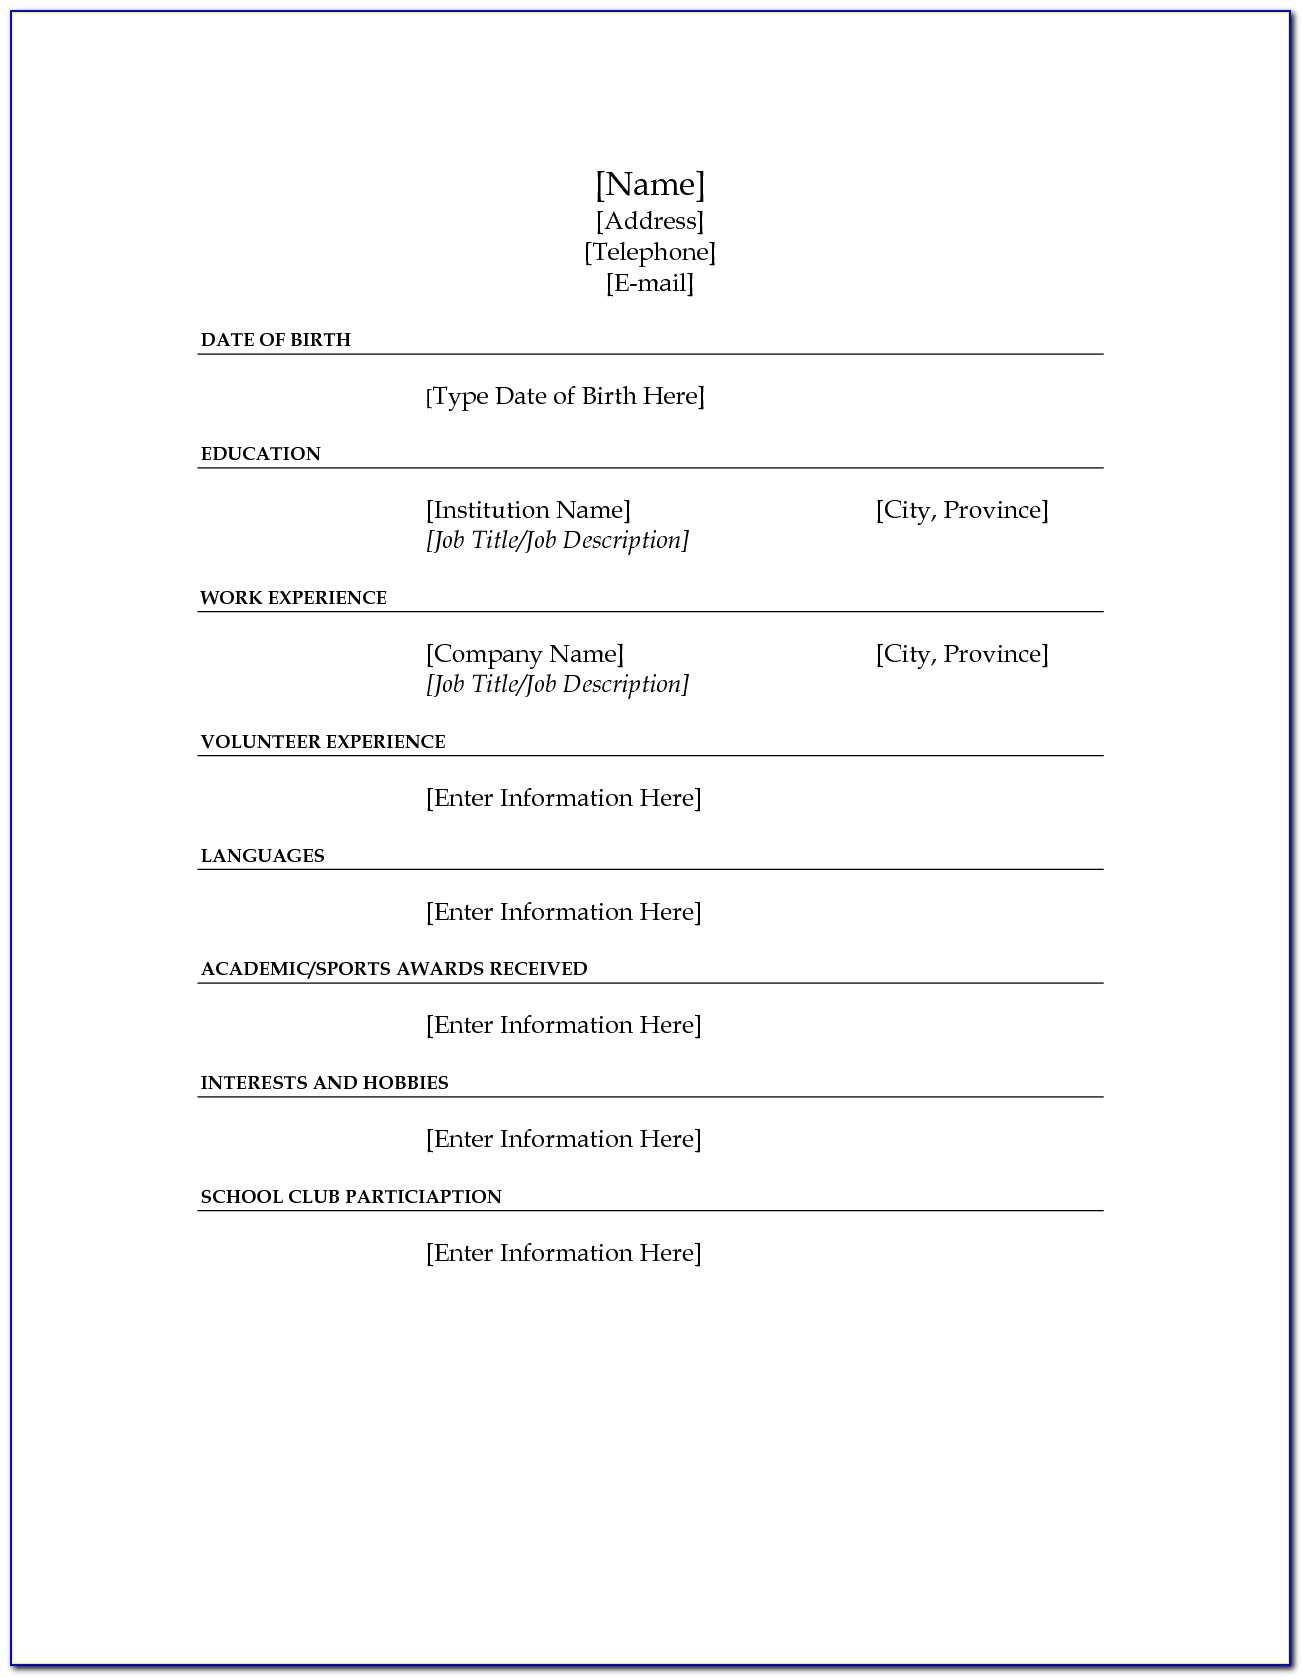 fill in the blank resume template for high school students vincegray2014 functional style Resume Blank Resume Template For High School Students